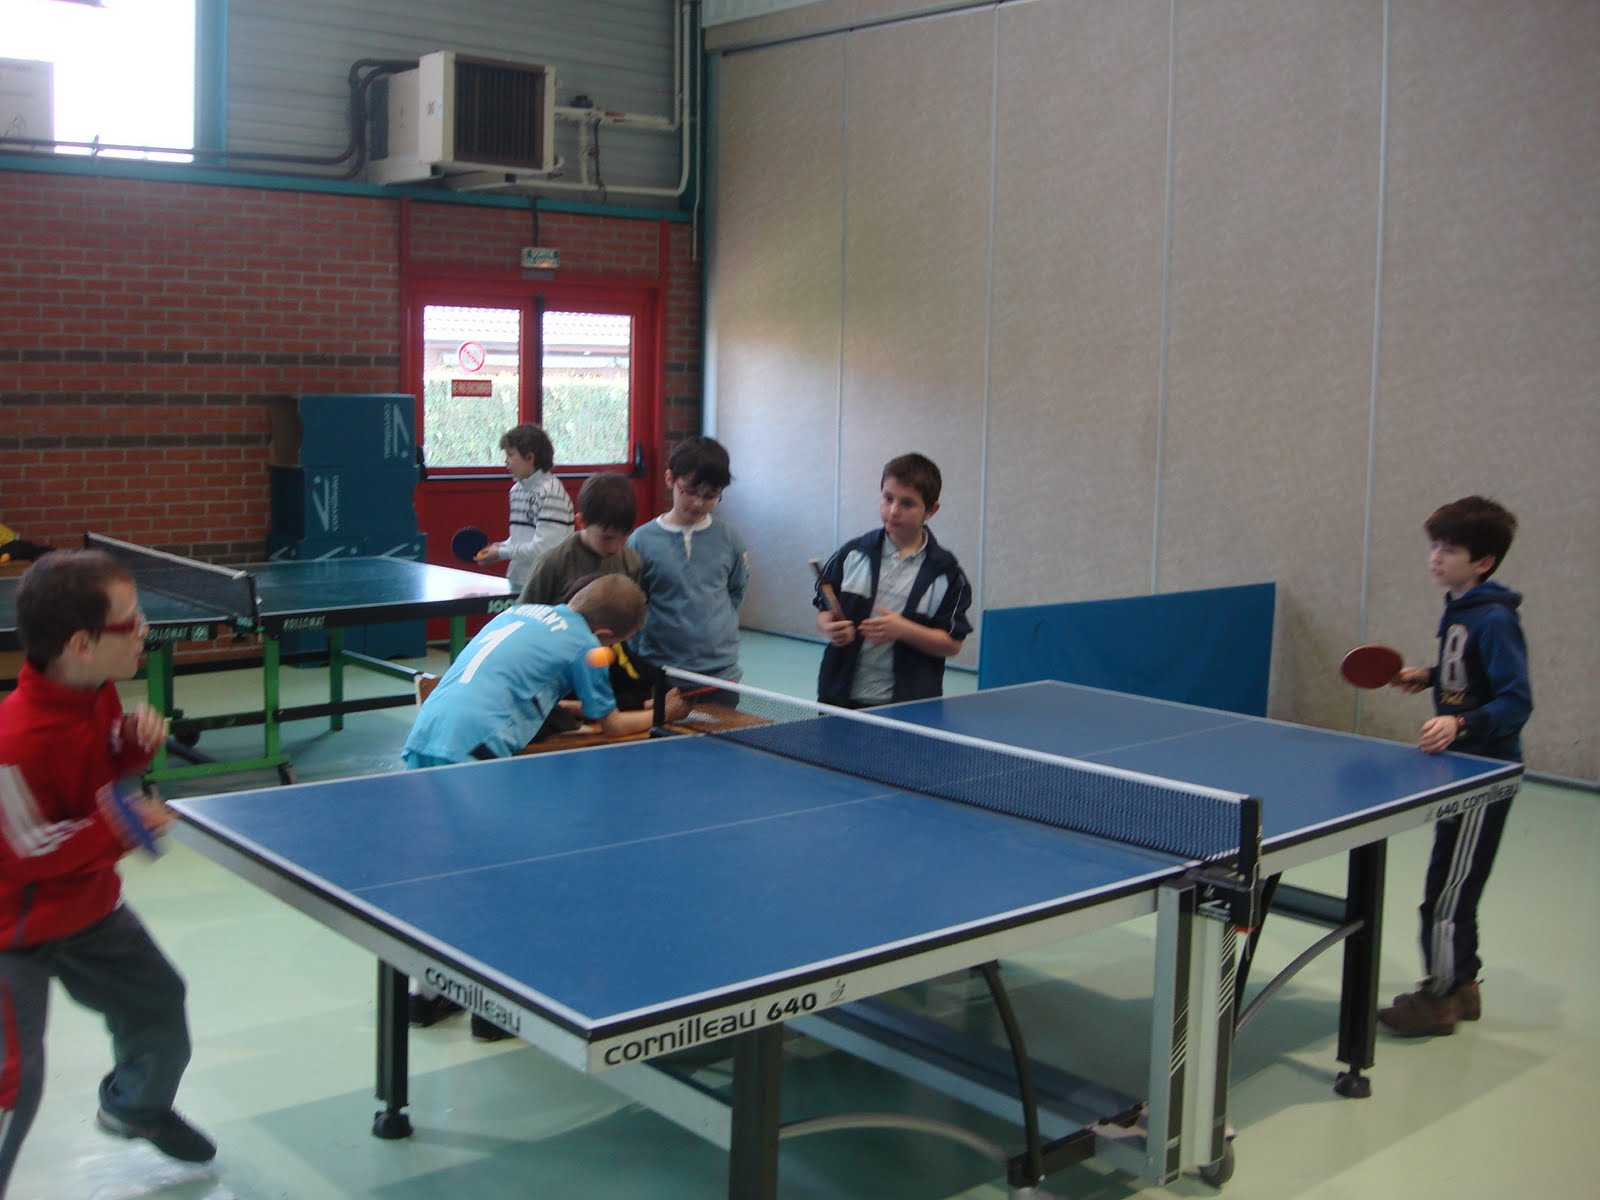 Ecole Le Grand Meaulnes: Rencontre Usep Tennis De Table encequiconcerne Piscine Orchies